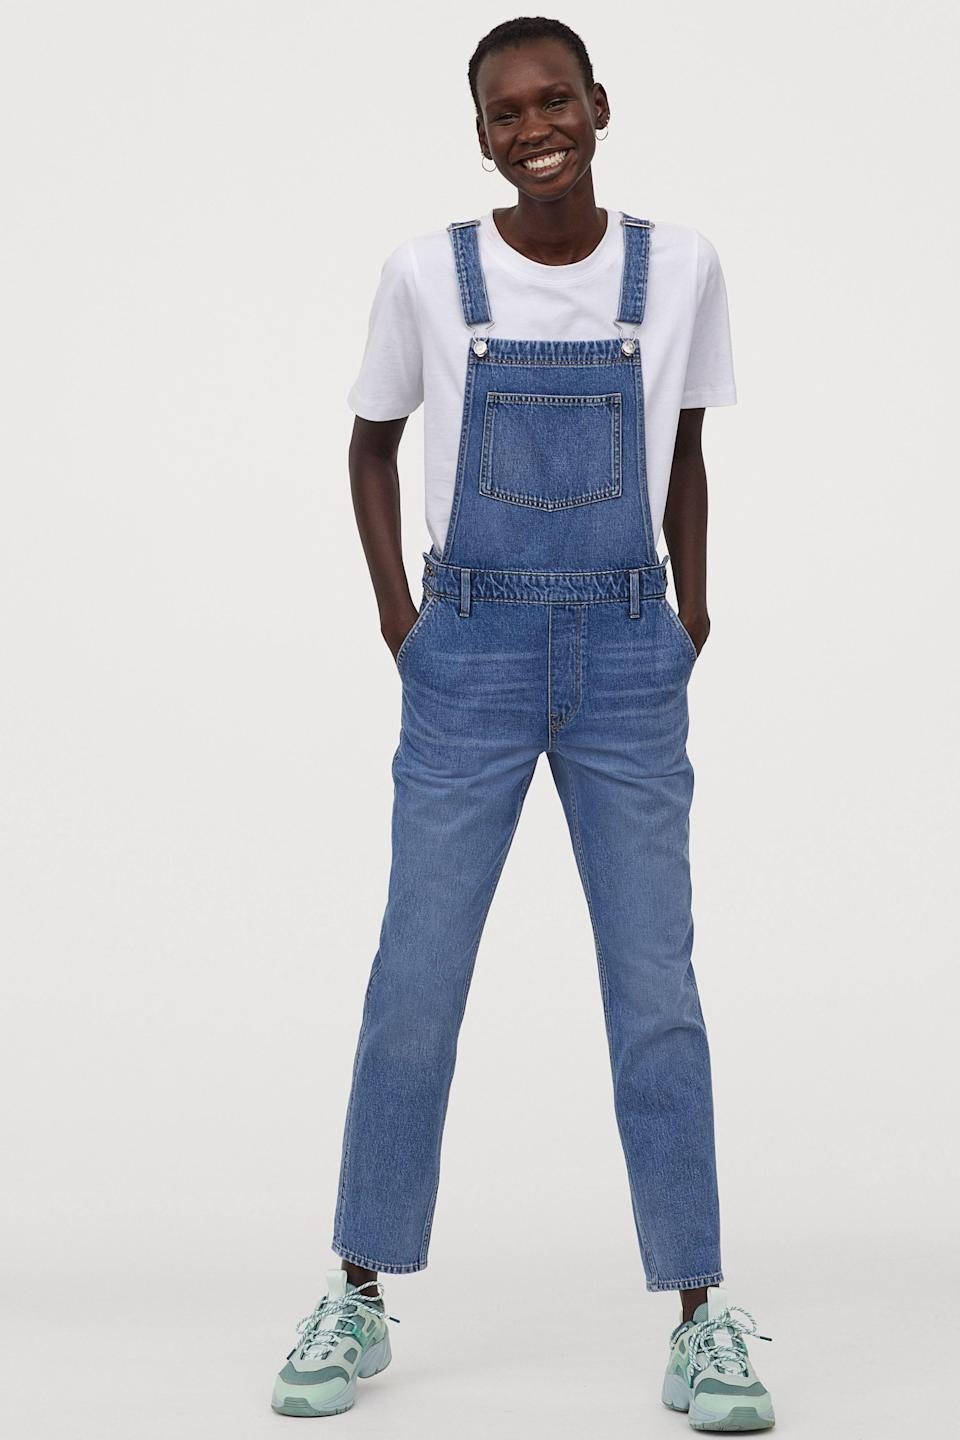 """<p><strong>H&M</strong></p><p>hm.com</p><p><strong>$39.99</strong></p><p><a href=""""https://go.redirectingat.com?id=74968X1596630&url=https%3A%2F%2Fwww2.hm.com%2Fen_us%2Fproductpage.0426019009.html&sref=https%3A%2F%2Fwww.goodhousekeeping.com%2Fholidays%2Fg32302046%2Ffourth-of-july-outfit-ideas%2F"""" rel=""""nofollow noopener"""" target=""""_blank"""" data-ylk=""""slk:Shop Now"""" class=""""link rapid-noclick-resp"""">Shop Now</a></p><p>The Forth of July is the perfect time to take advantage of <a href=""""http://www.goodhousekeeping.com/beauty/fashion/g32190560/how-to-wear-overalls-outfits/"""" rel=""""nofollow noopener"""" target=""""_blank"""" data-ylk=""""slk:a classic pair of overalls"""" class=""""link rapid-noclick-resp"""">a classic pair of overalls</a>. Not only are they super versatile and easy to style, but they can also be worn from a pre-parade brunch to lighting sparklers with the kids. </p>"""